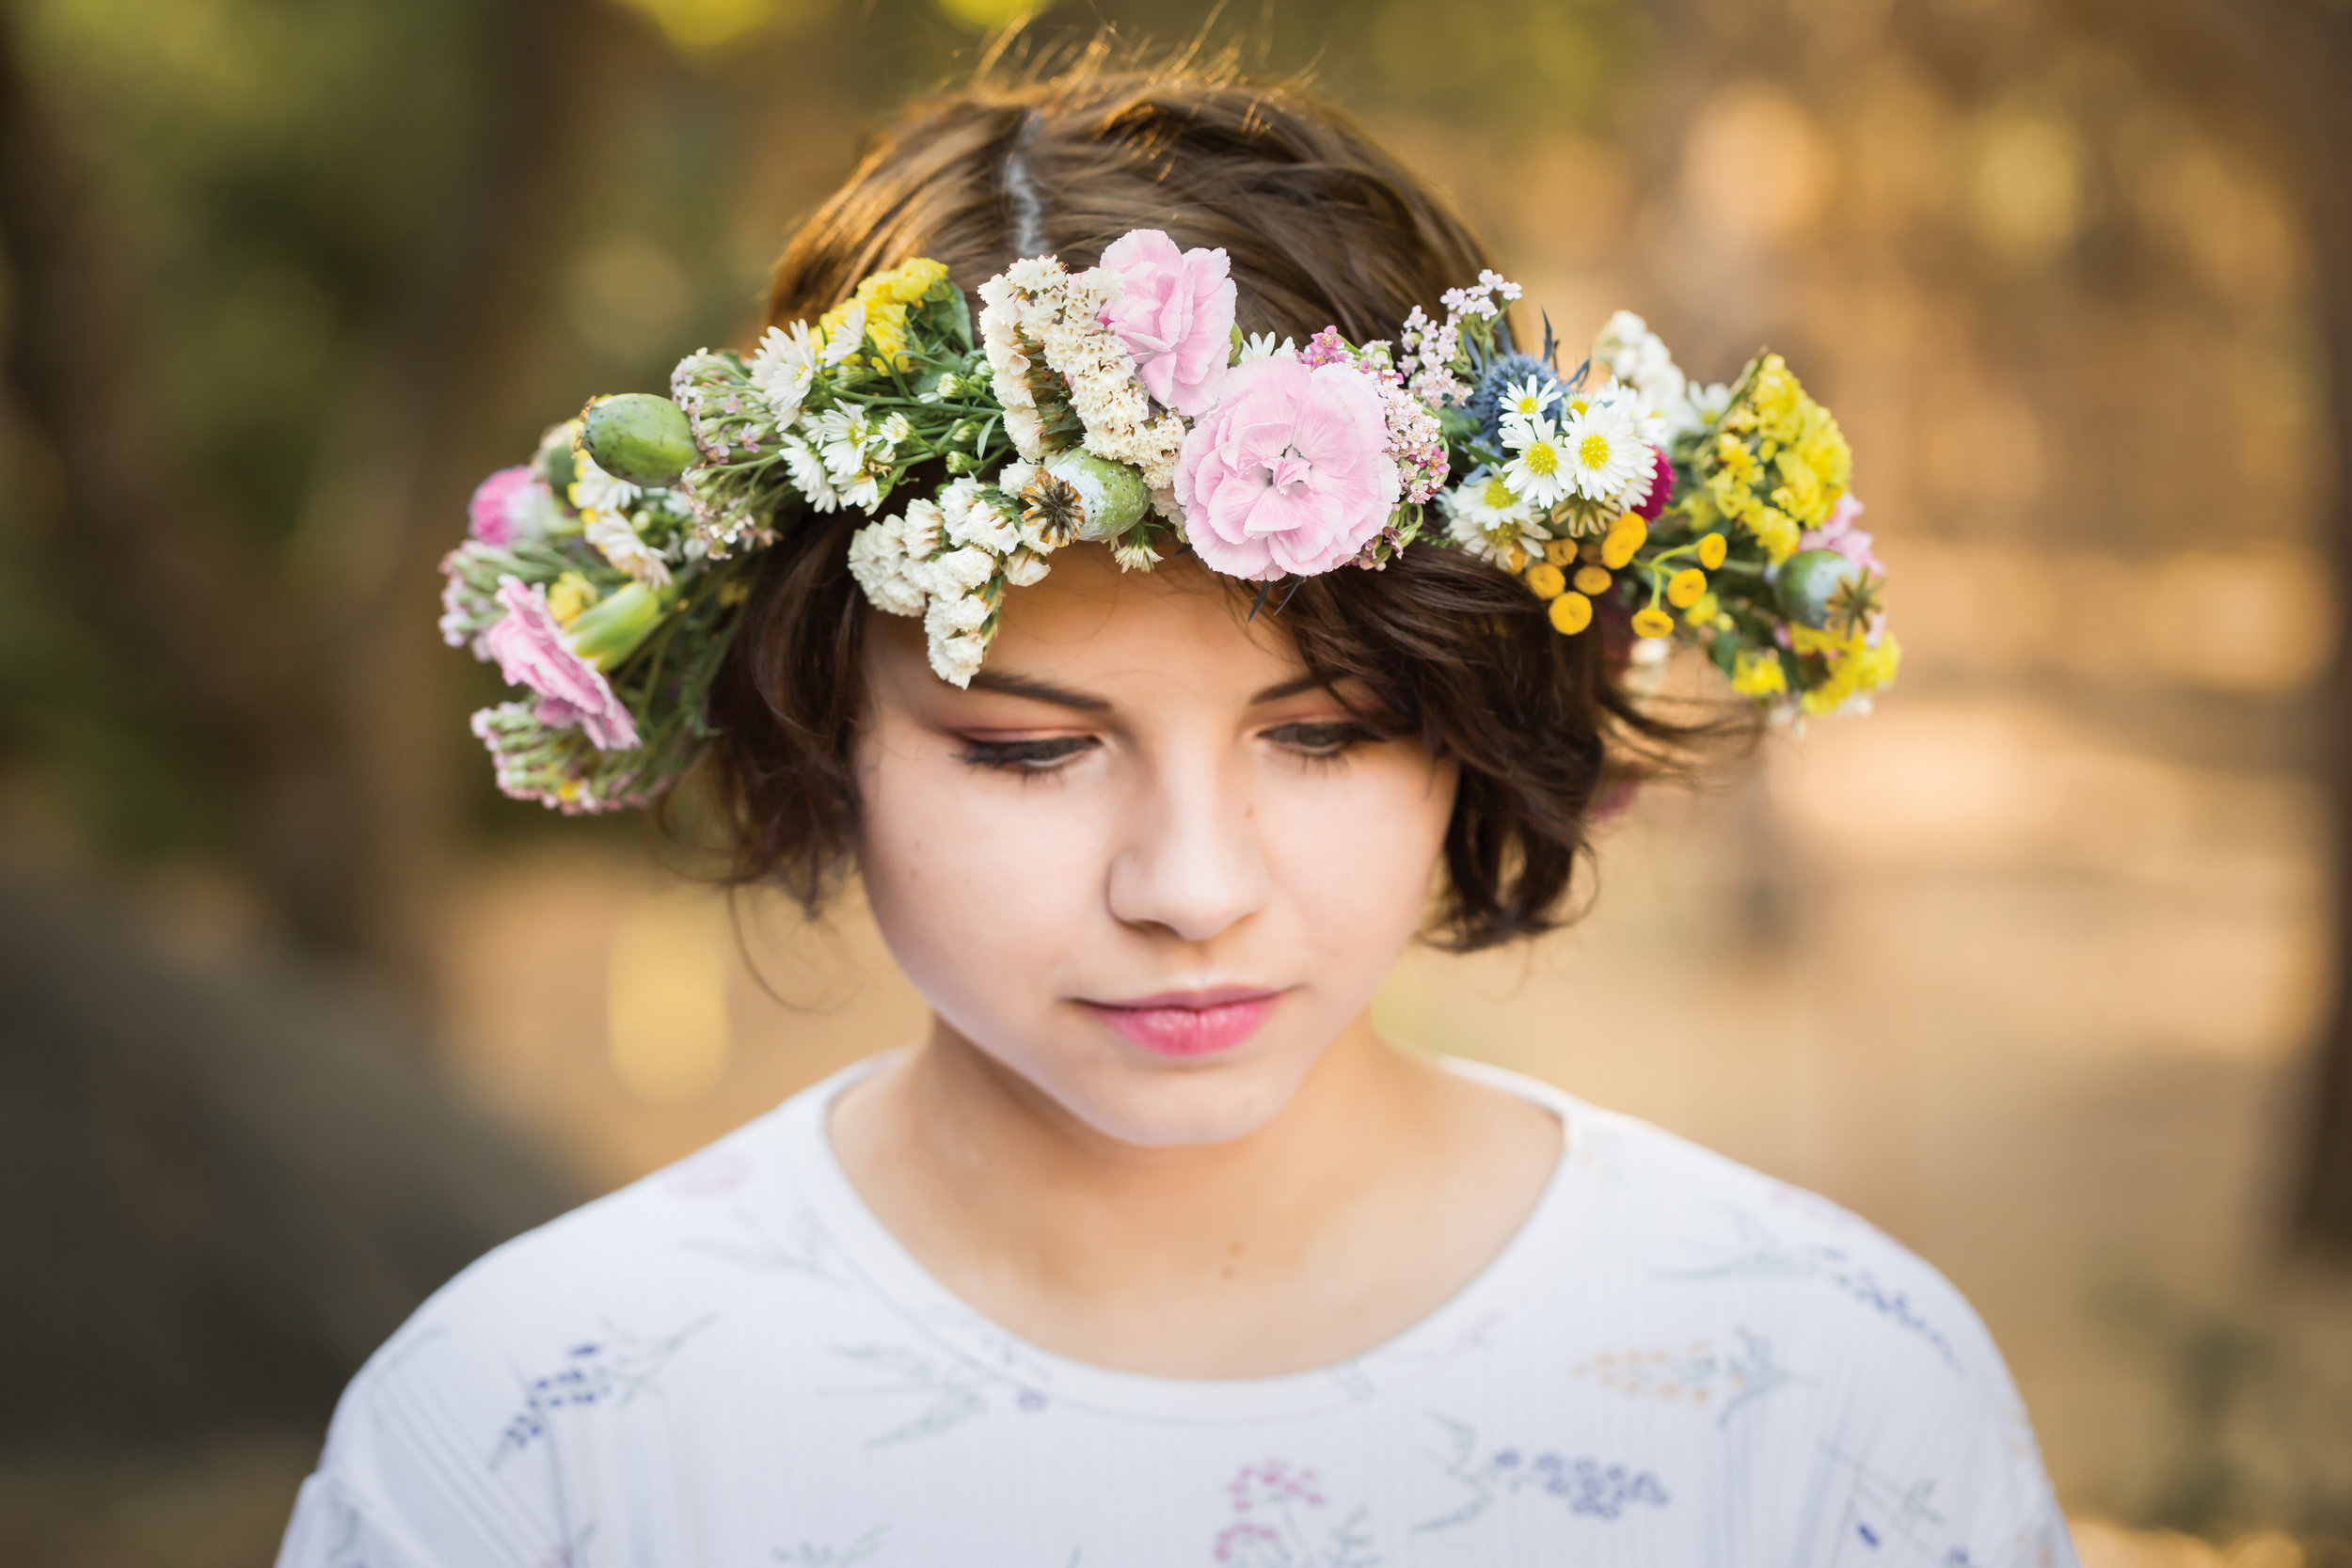 MJF flower crown by Nadeen Flynn.jpg